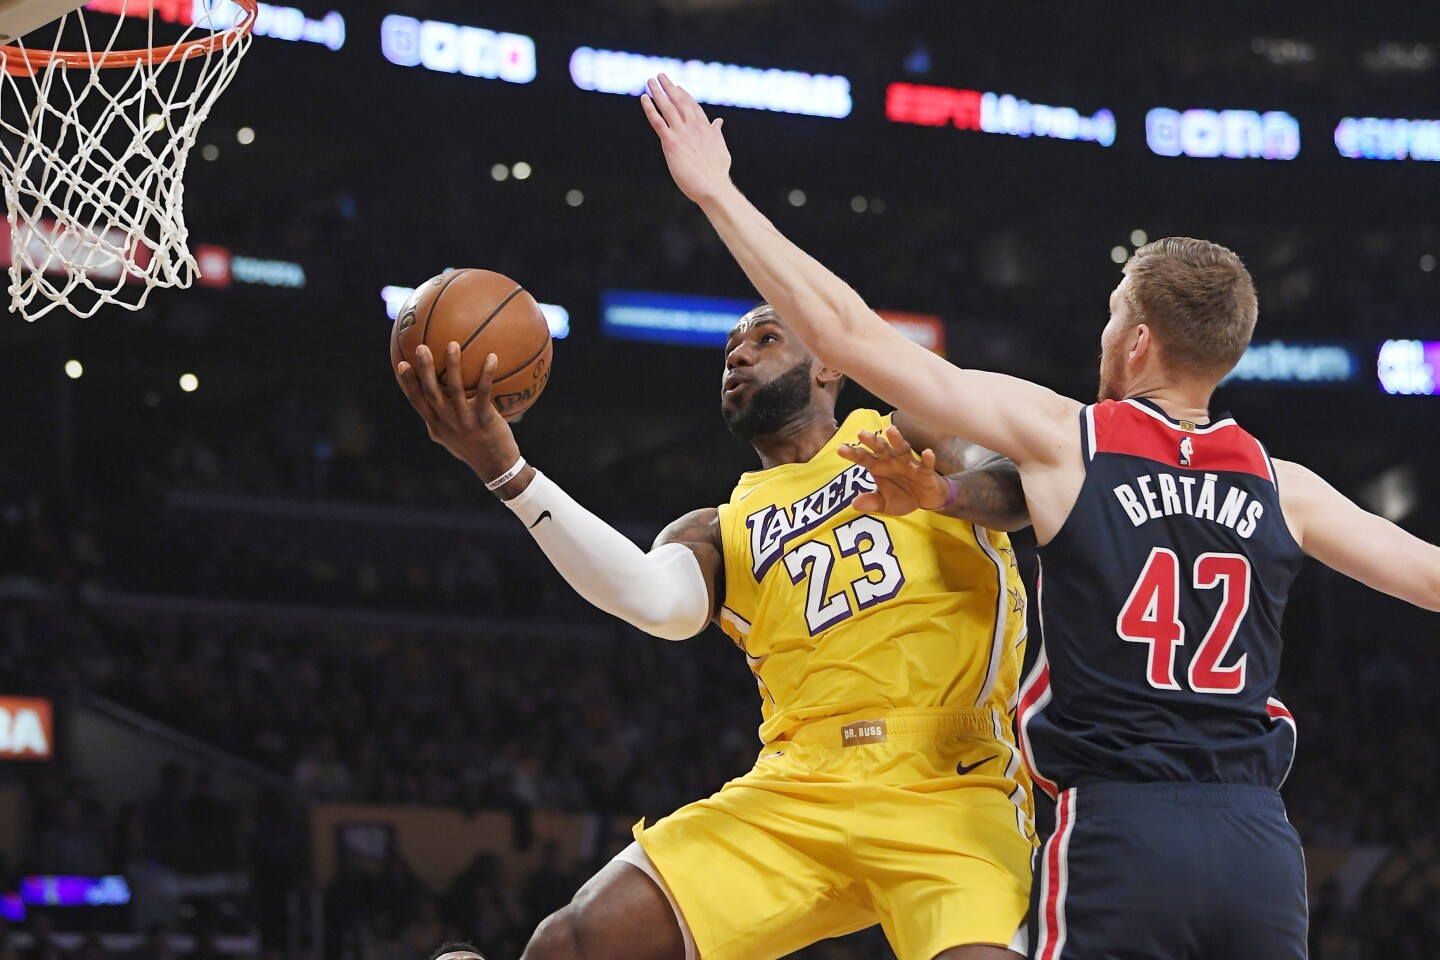 Photos: Los Angeles Lakers vs. Washington Wizards - Los Angeles Times